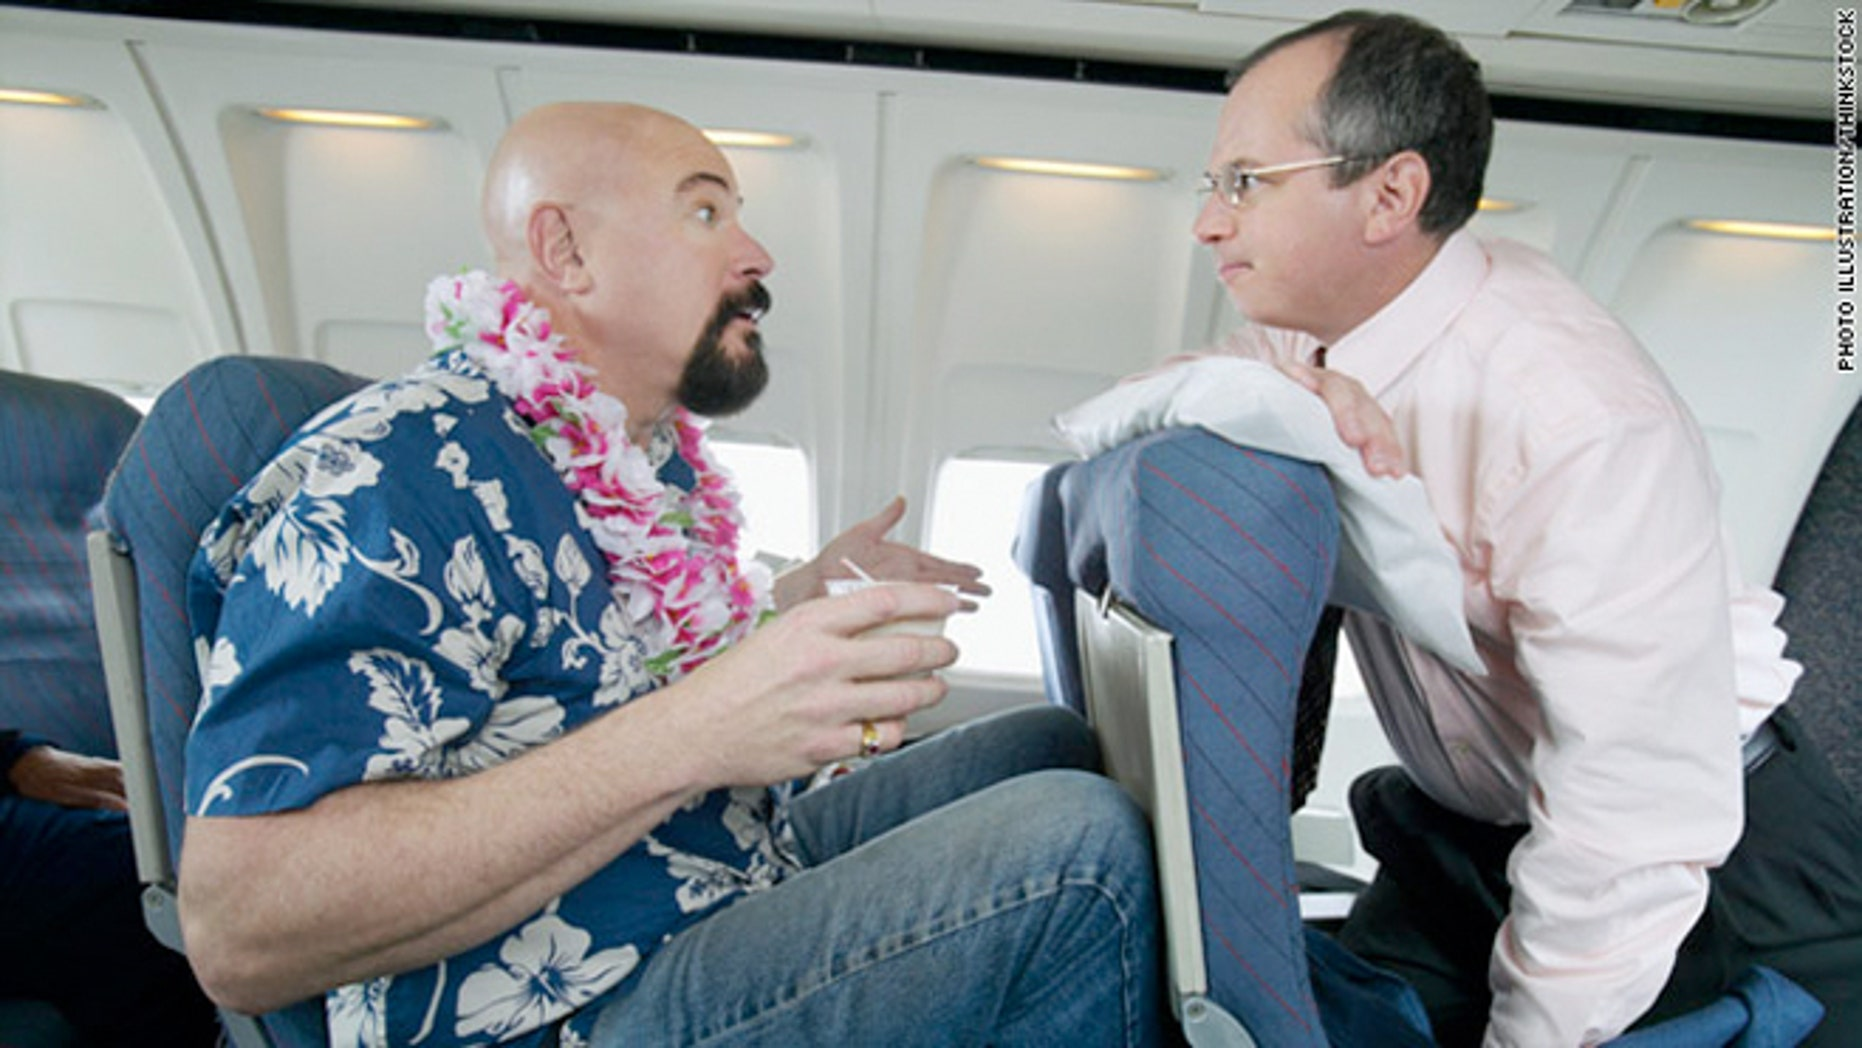 A new survey shows that some passengers are willing to sacrifice their own comfort to put an end to in-flight tension.